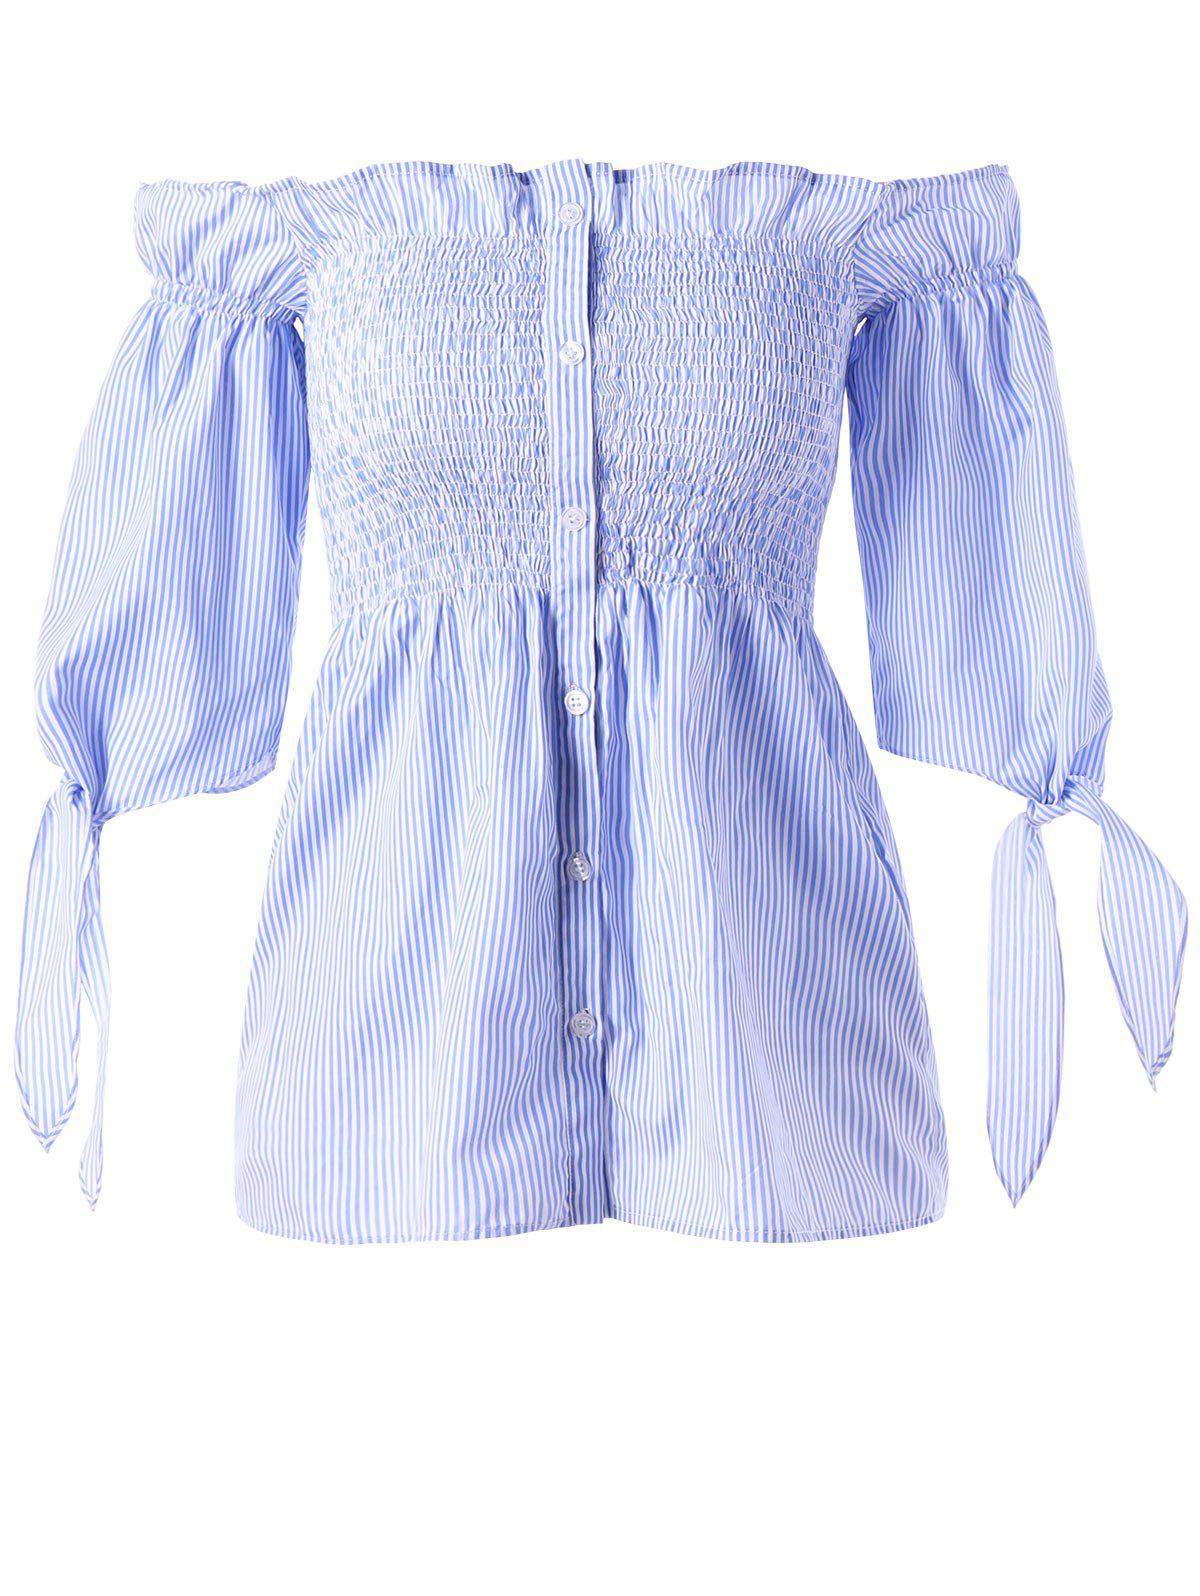 Button Up Off The Shoulder Striped BlouseWOMEN<br><br>Size: XL; Color: BLUE STRIPE; Style: Fashion; Material: Cotton,Spandex; Shirt Length: Regular; Sleeve Length: Half; Collar: Off The Shoulder; Pattern Type: Striped; Embellishment: Bowknot,Ruffles; Season: Fall,Spring,Summer; Elasticity: Elastic; Weight: 0.1600kg; Package Contents: 1 x Blouse;